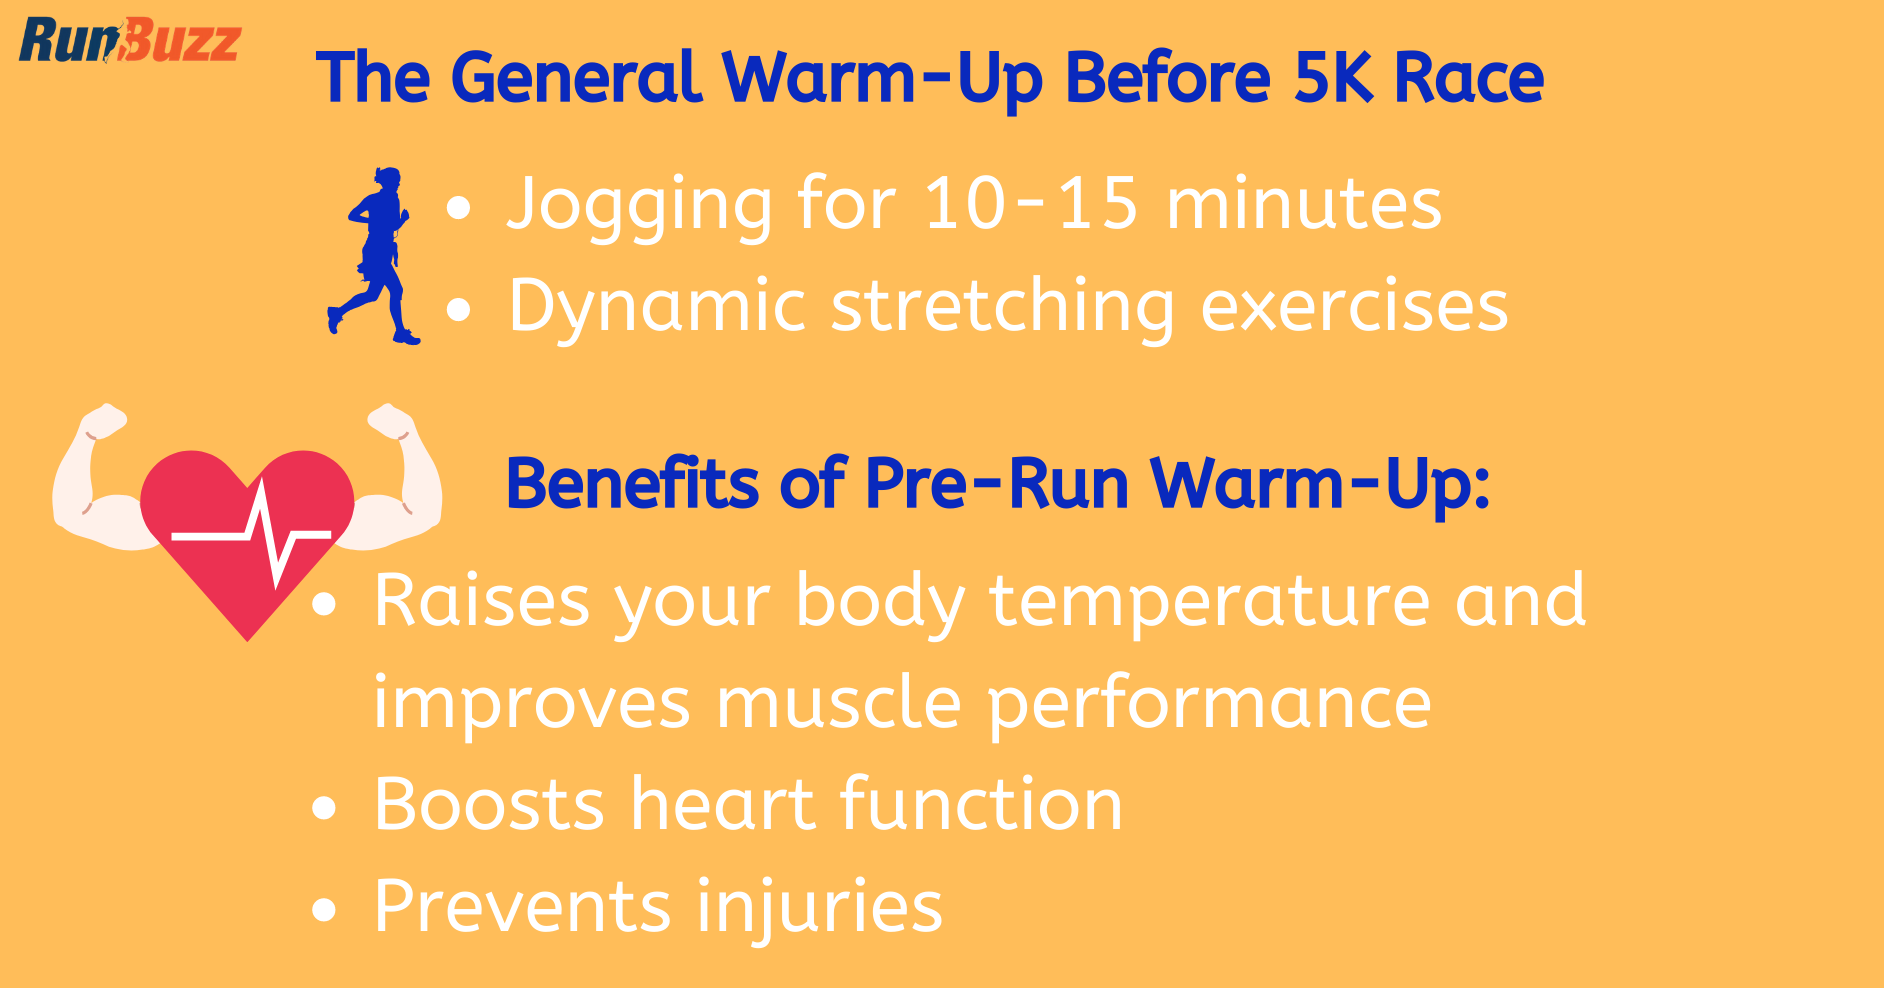 The-General-Warm-Up-Before-5K-Race-and-its-Benefits